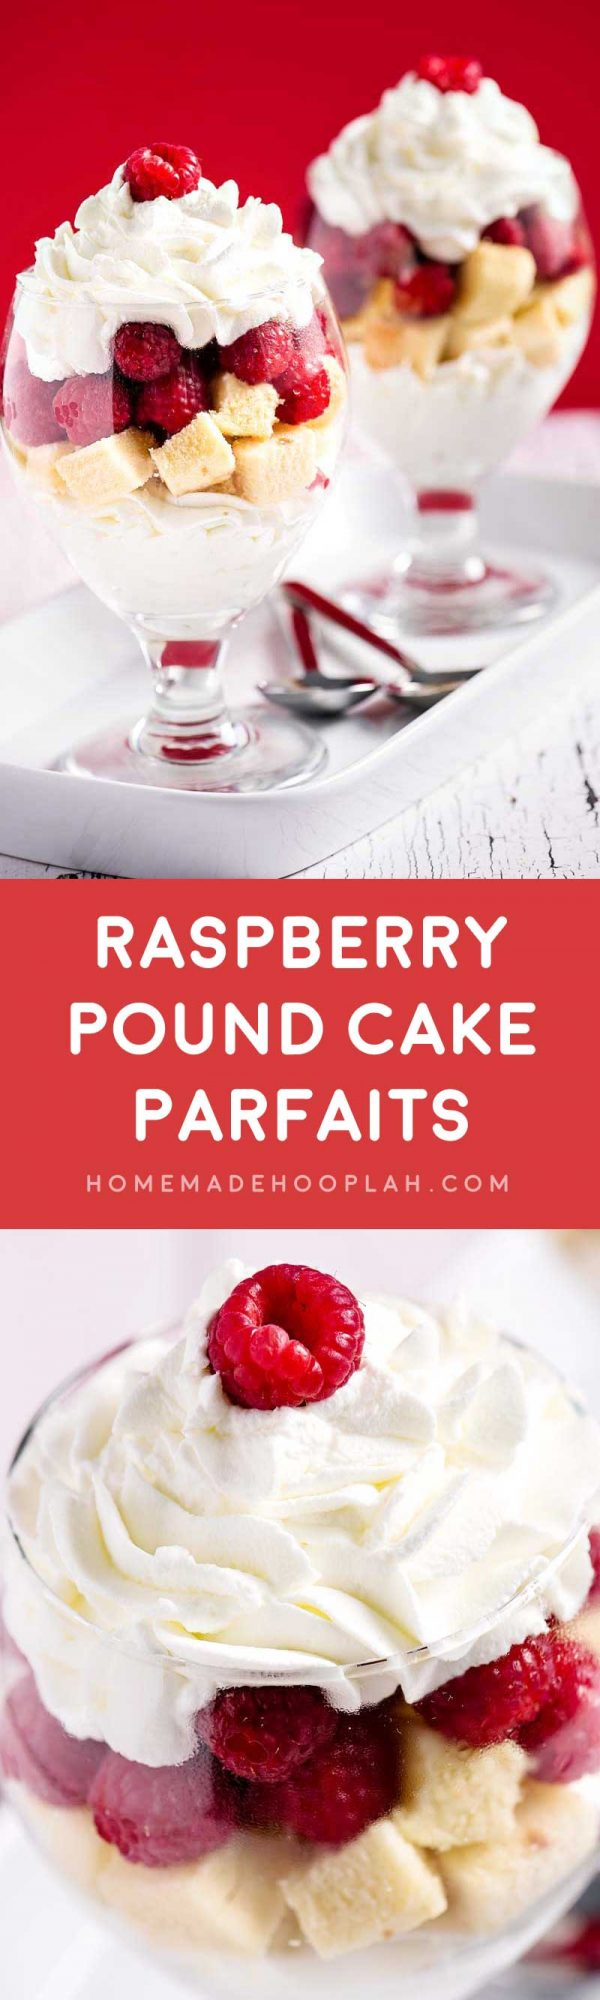 Raspberry Pound Cake Parfaits! These easy and summery raspberry parfaits are made with made with fresh raspberries, homemade whipped cream, and fluffy Sara Lee All Butter Pound Cake. | HomemadeHooplah.com AD